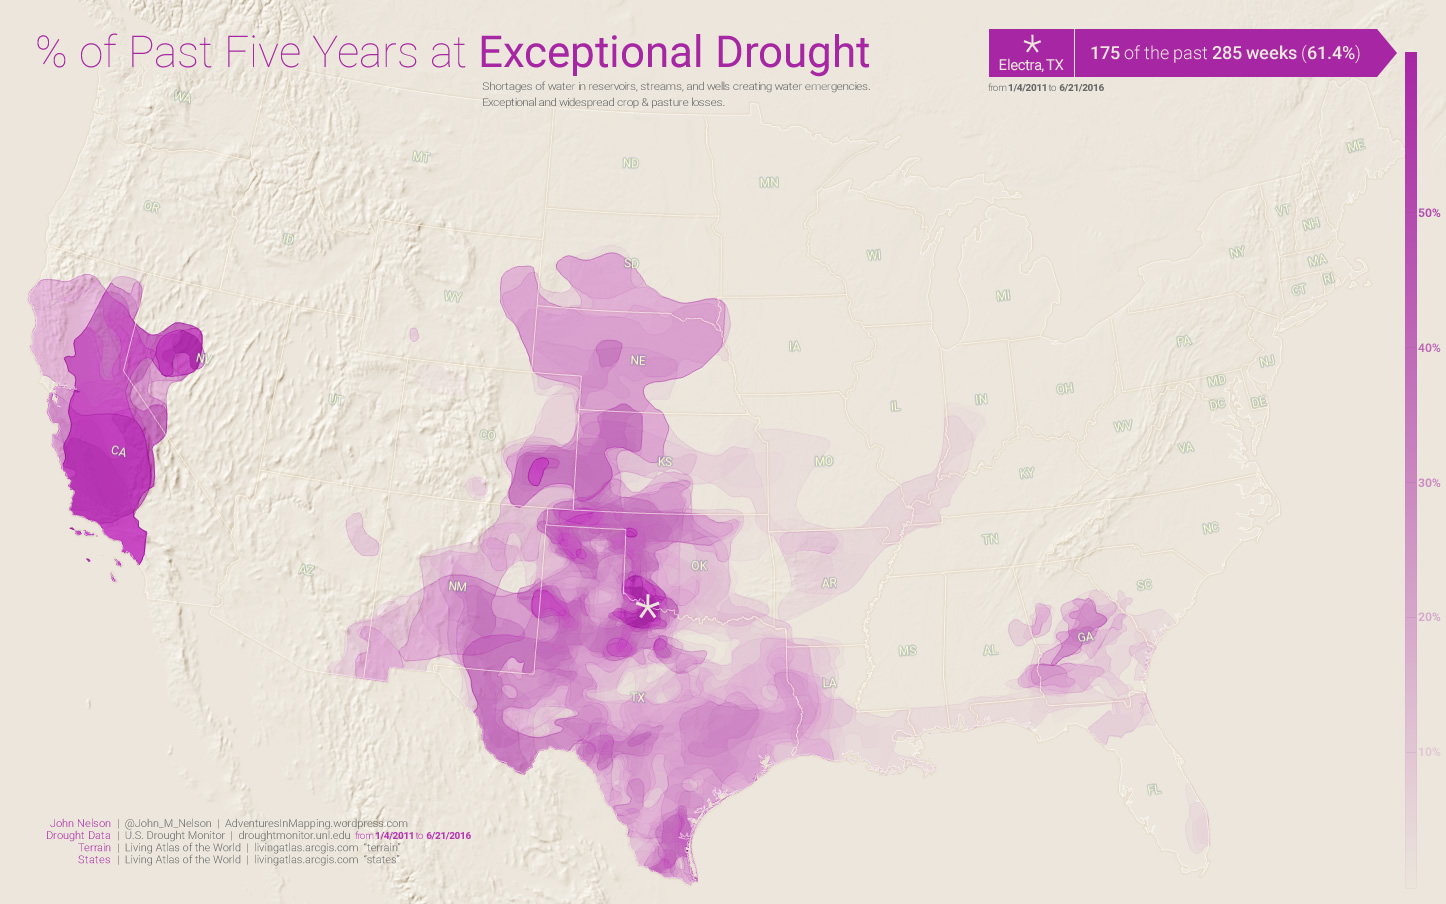 % of past 5 years at exceptional drought